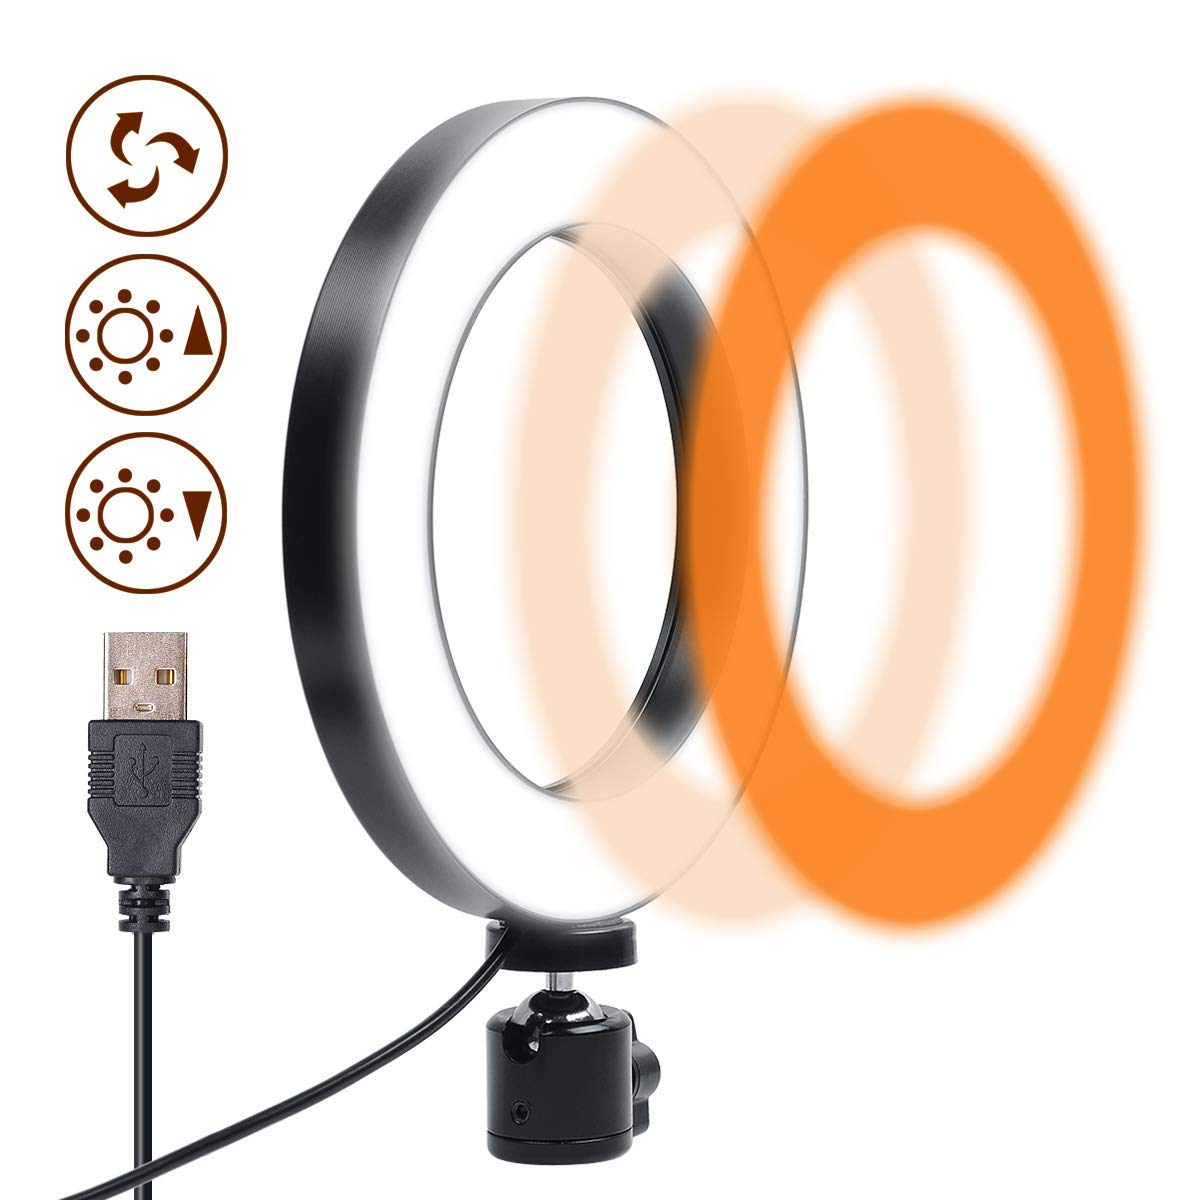 Gemwon Ring Light 6 Inches - 3 Color Lights & 10 Dimmable Brightness, Premium LED Makeup Lighting for Streaming, YouTube Video, Photo, Photography, Selfie by GEMWON